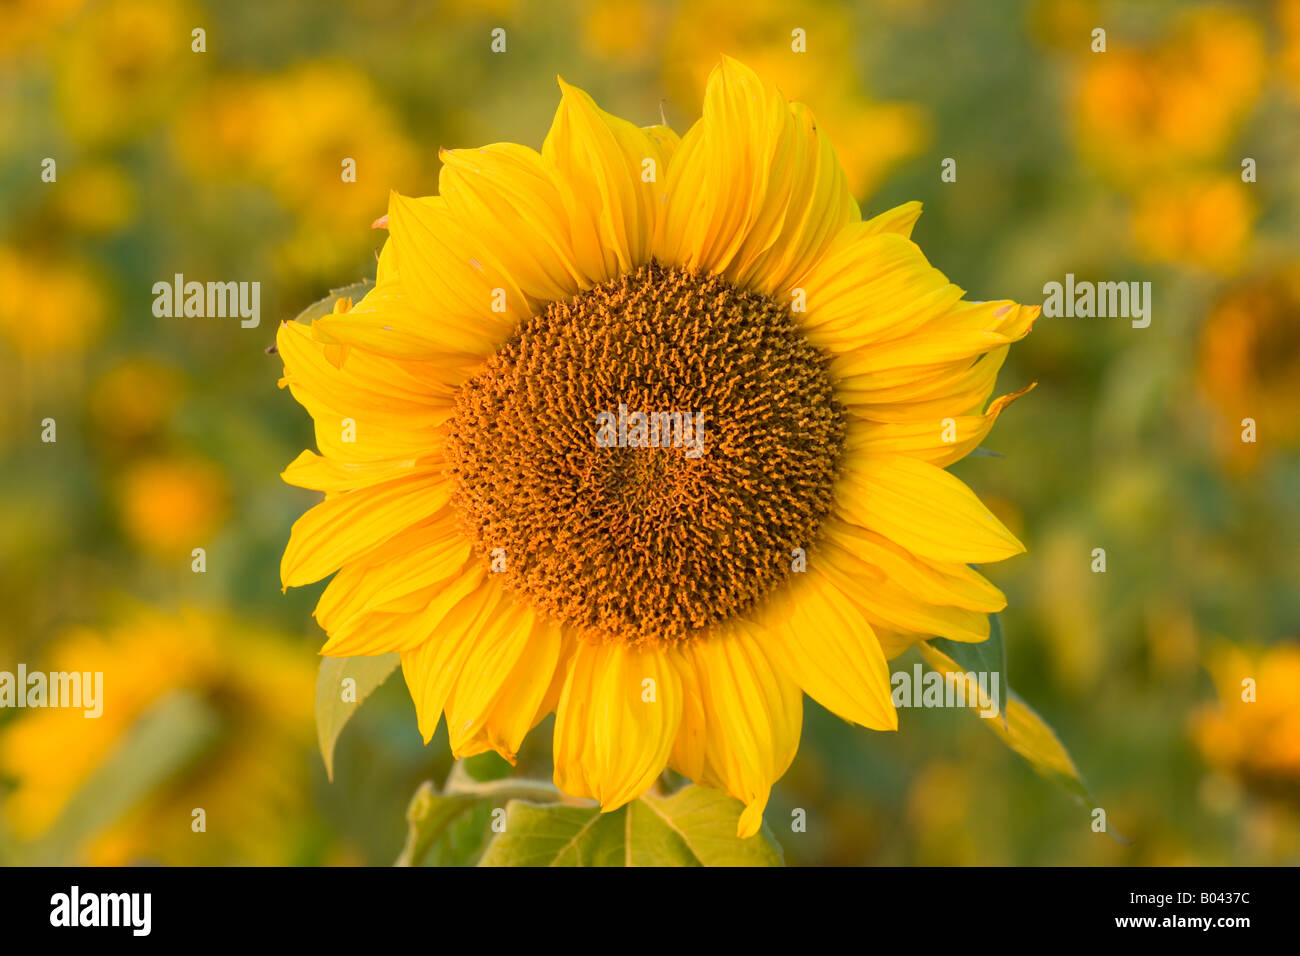 blossom of a sunflower within a whole field of flowers in last evening light Baden Wuerttemberg Germany - Stock Image